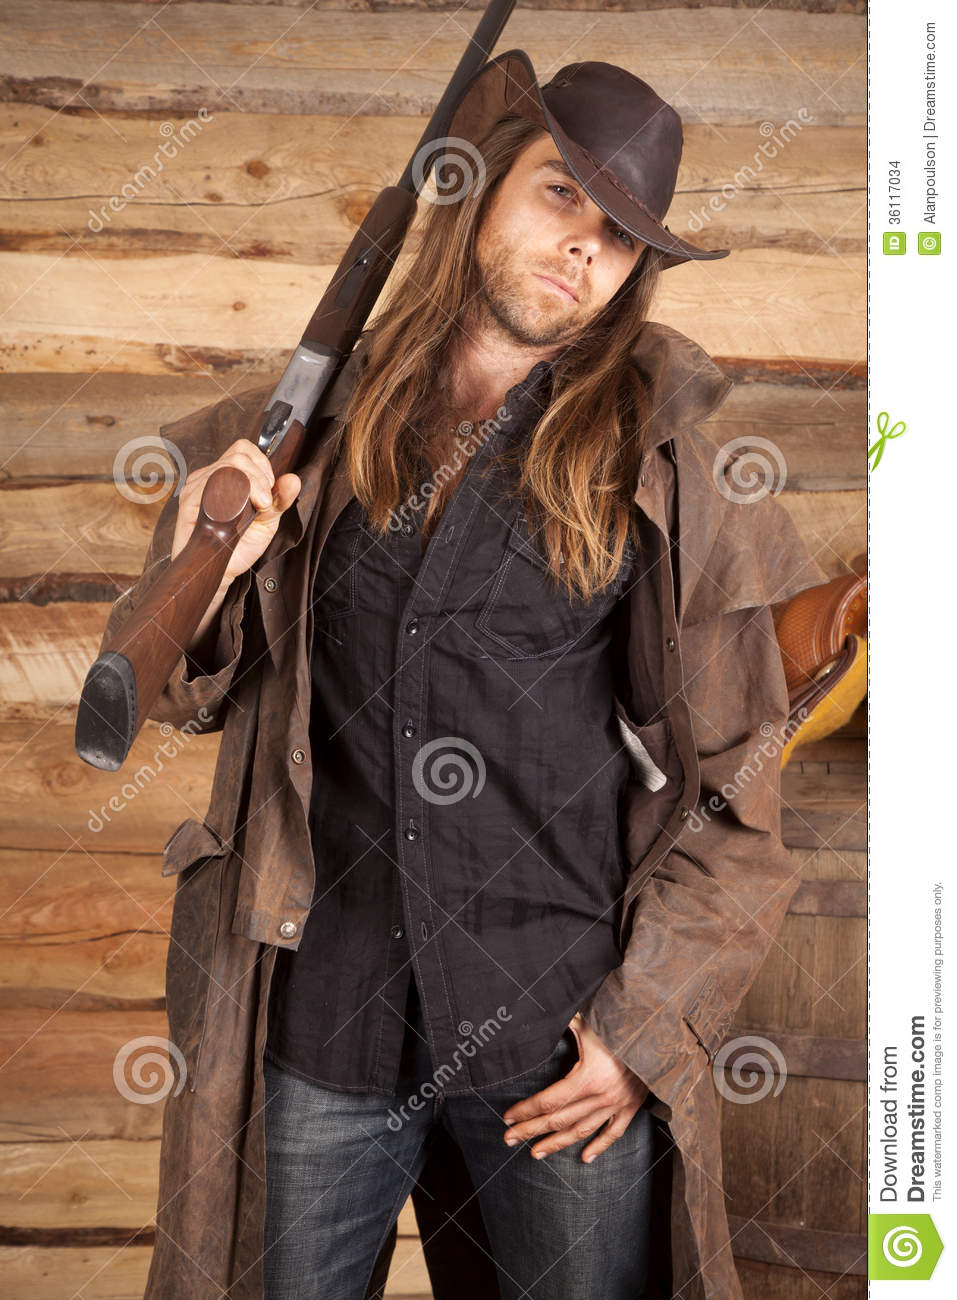 d159b9bb3b6e3 Cowboy Duster Long Hair Rifle On Shoulder Look Stock Photo - Image ...